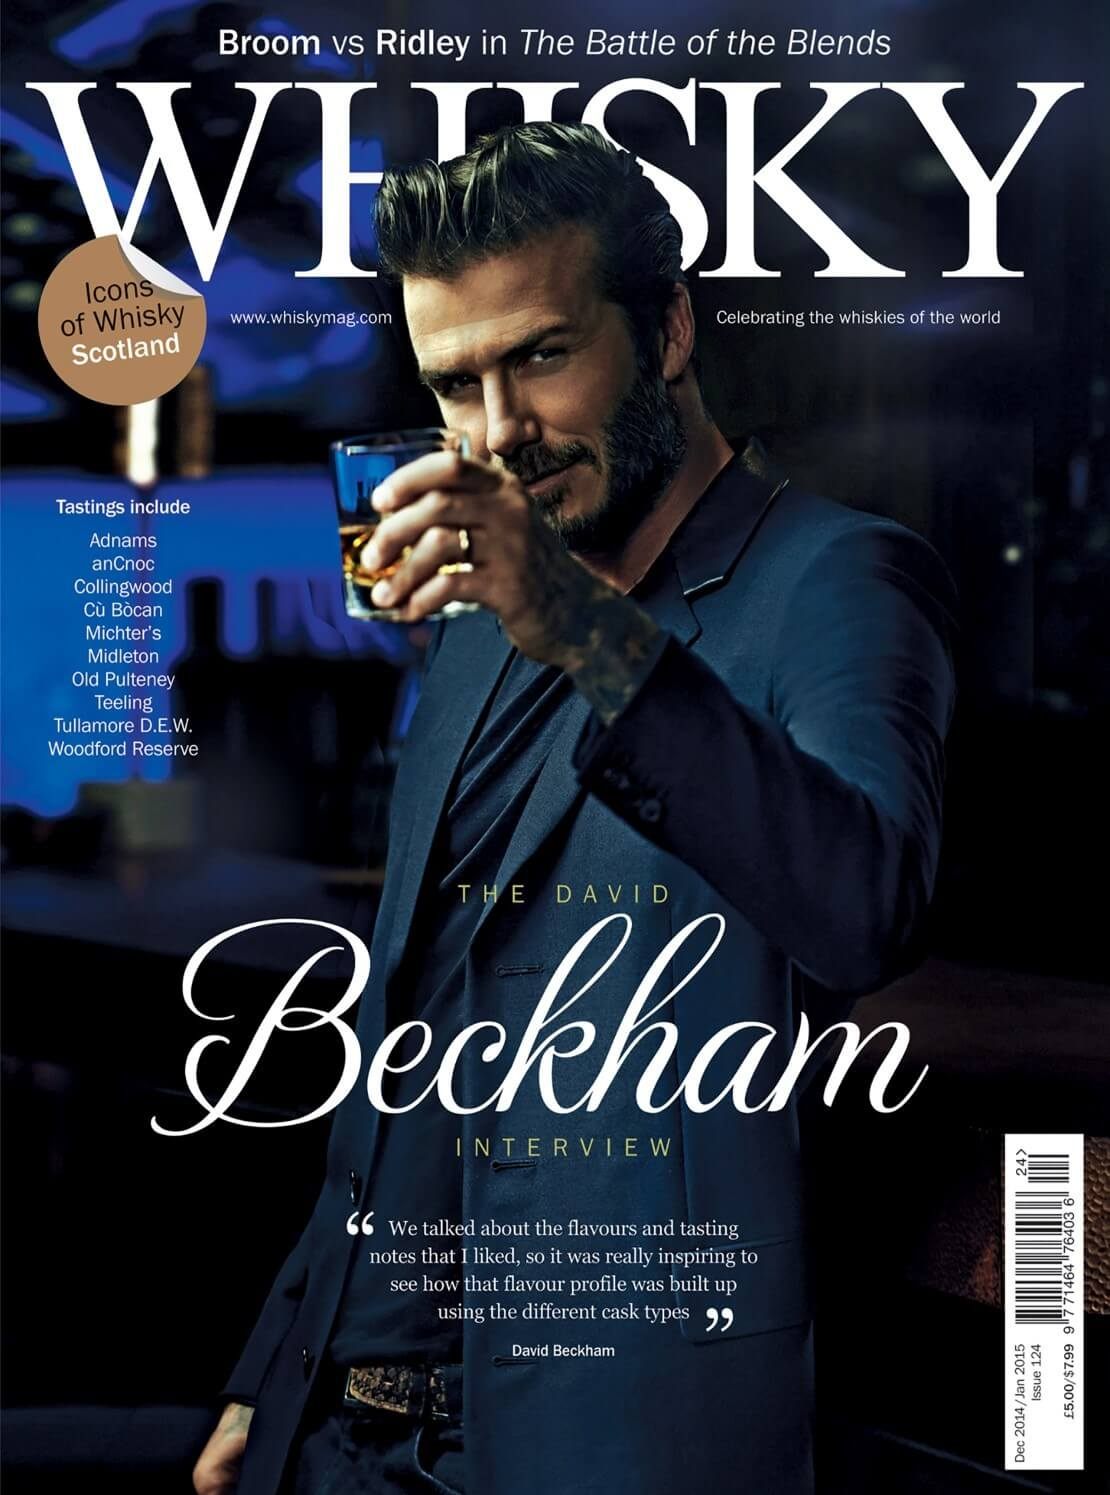 David Beckham Interview Battle of the Blends Ardbeg Distillery Japan focus